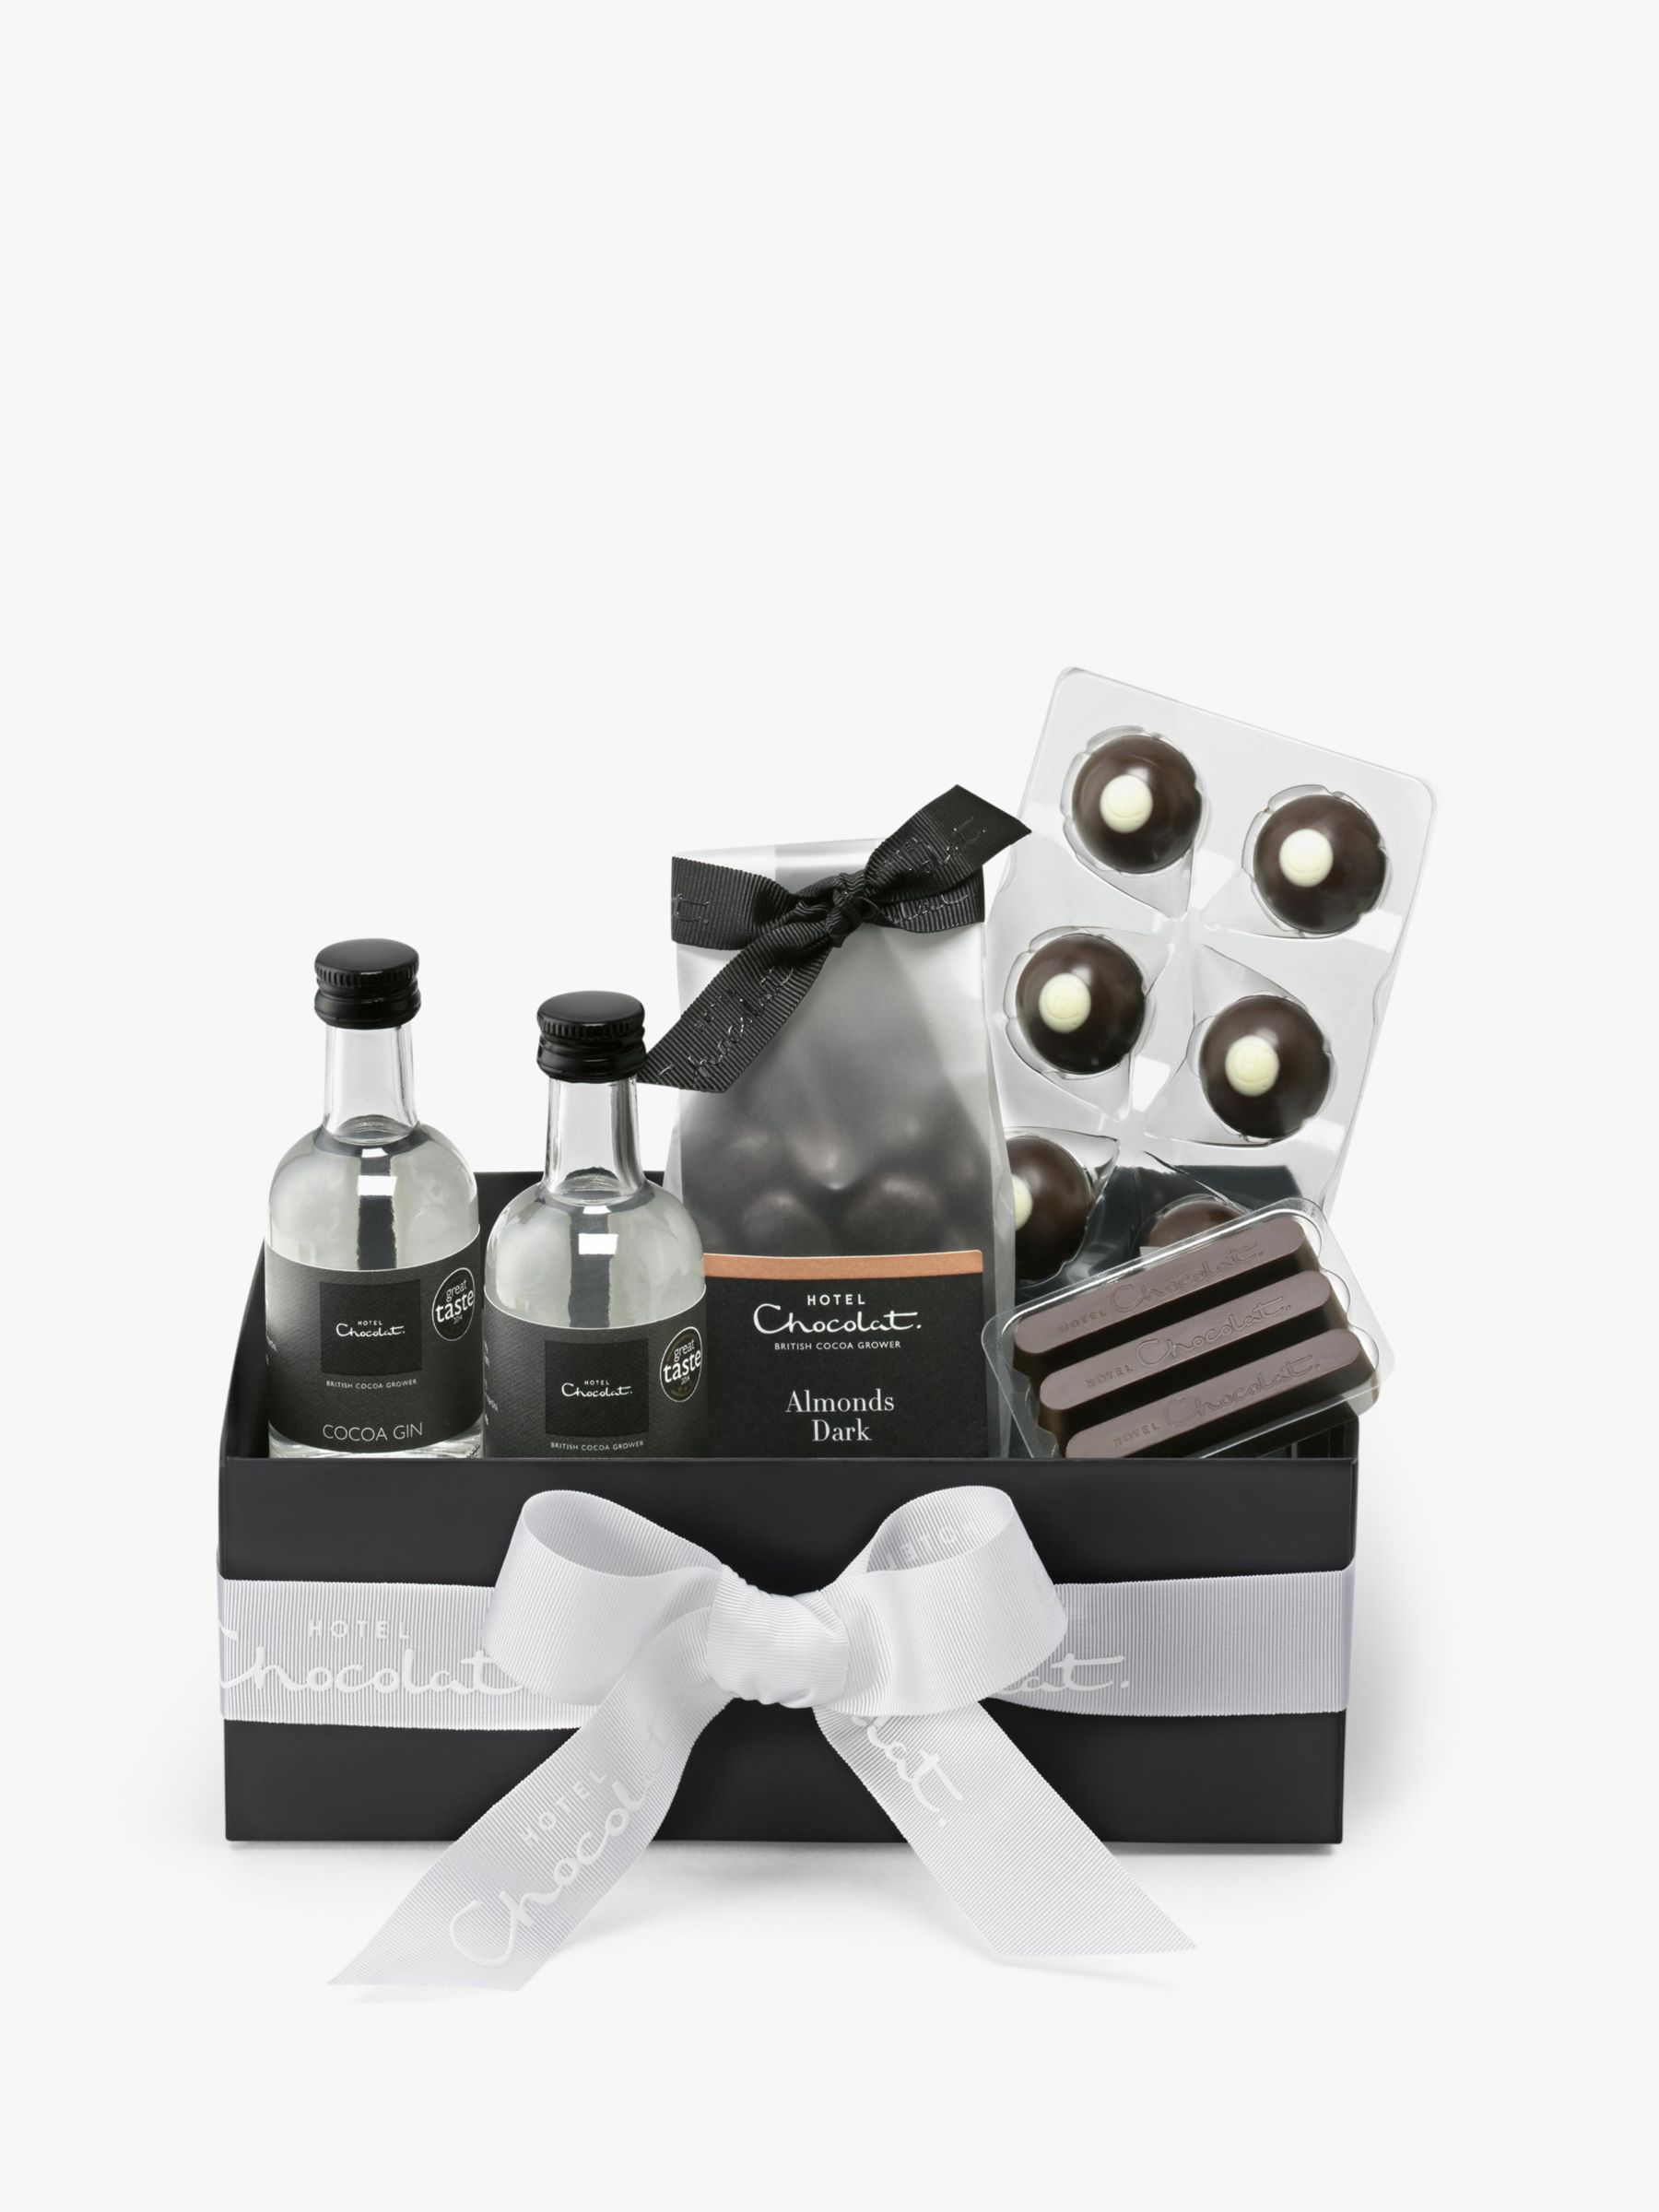 Hotel Chocolat Hotel Chocolat 'The Gin Collection', 175g